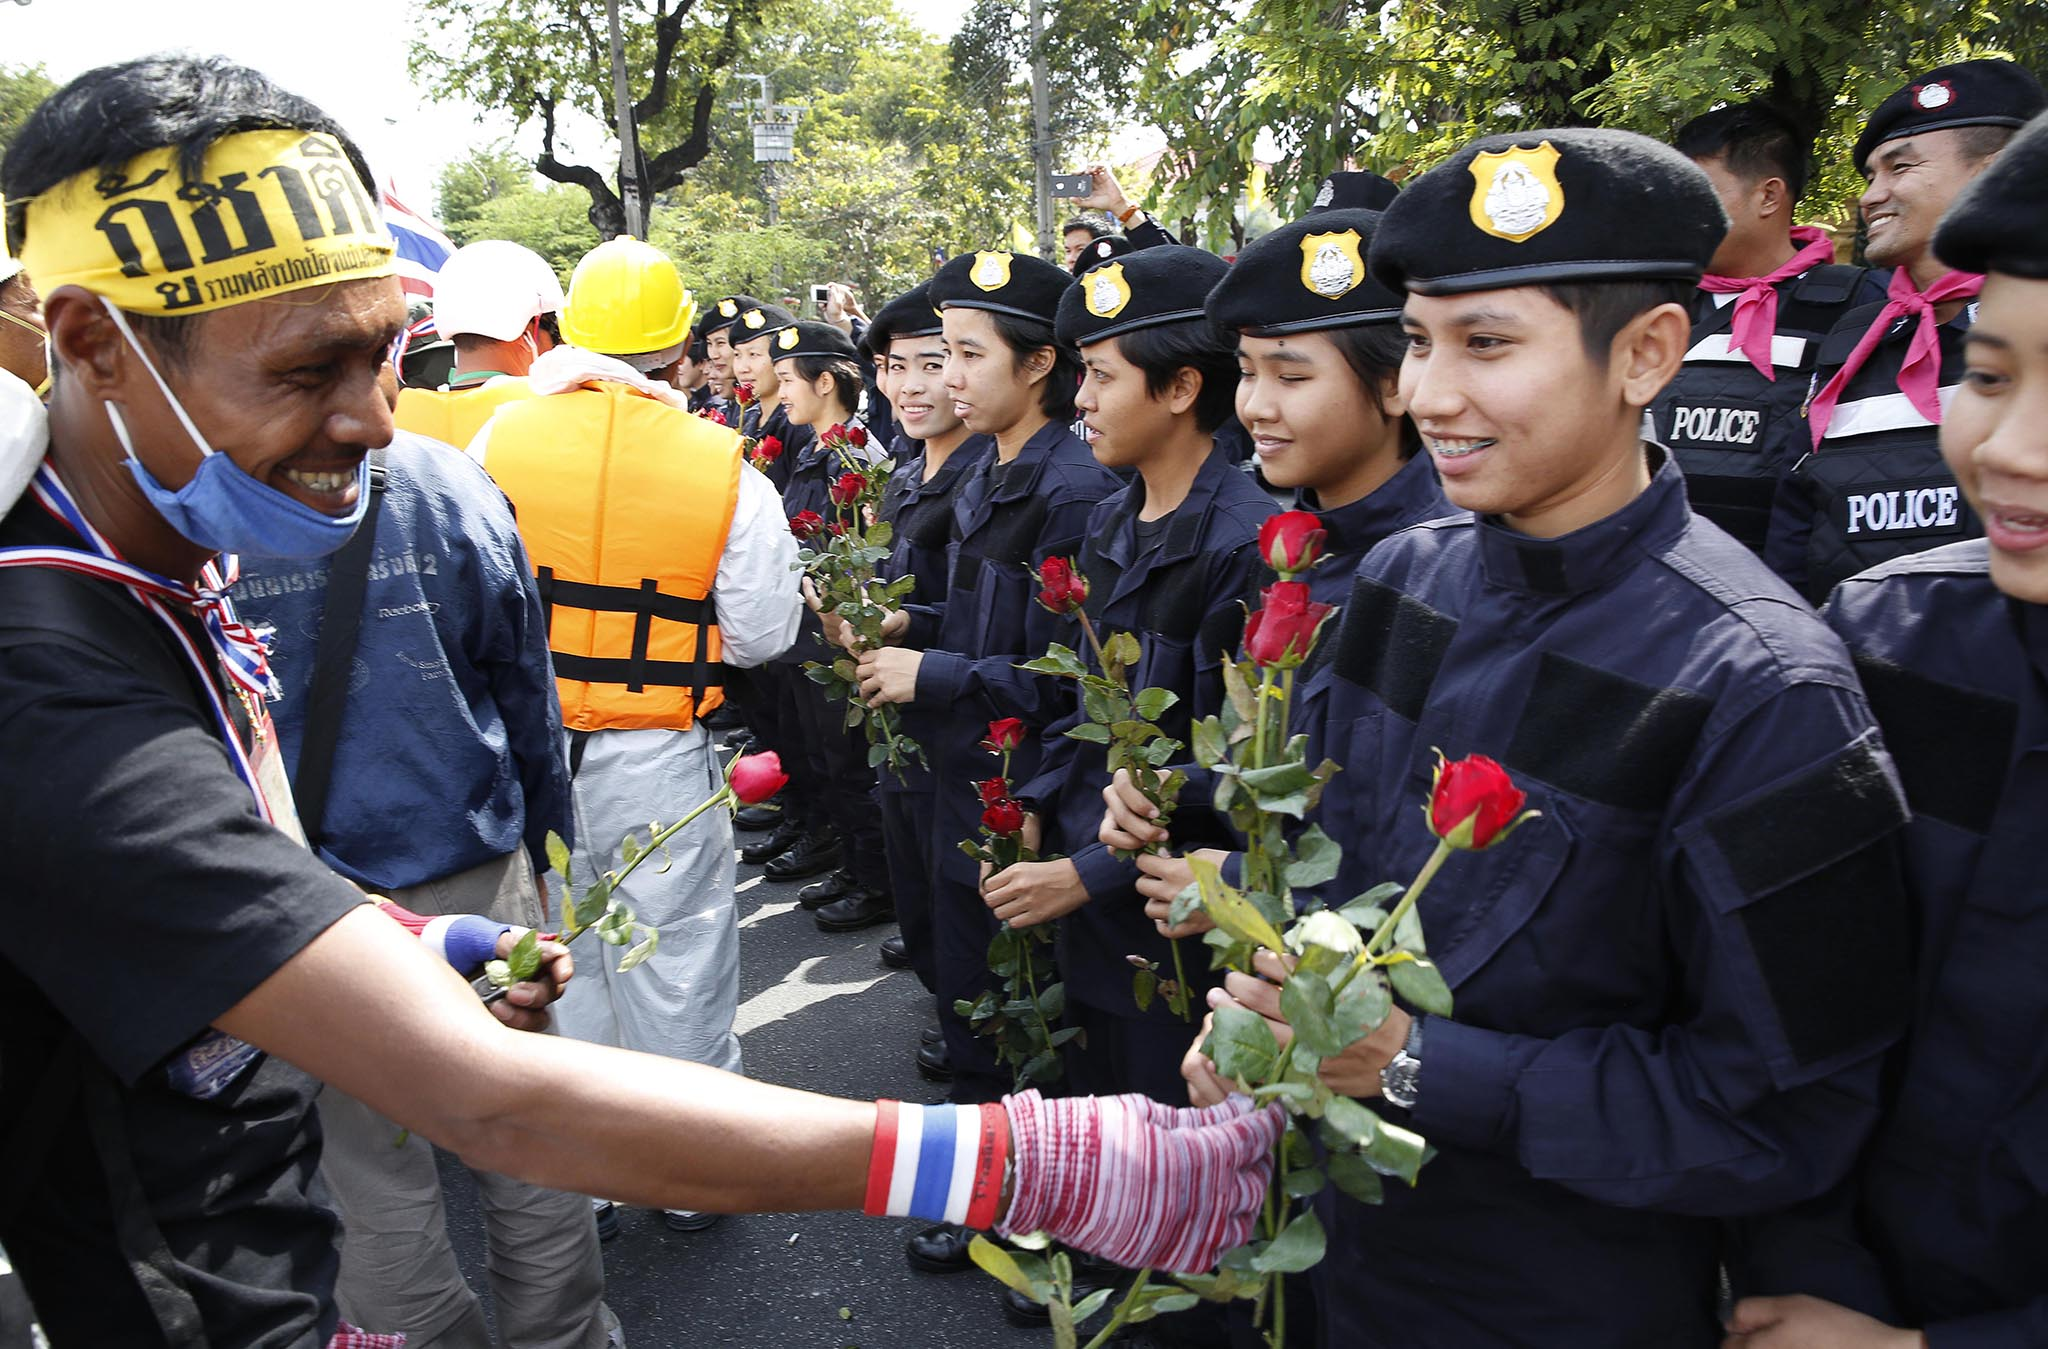 An anti-government protester gives roses to Thai policewomen outside city police headquarters in Bangkok, Thailand Tuesday, Dec. 3, 2013. Anti-government protesters swarmed into the Thai prime minister's office compound Tuesday as police stood by and watched, allowing them to claim a symbolic victory after three days of bitter clashes. Hundreds of protesters poured onto the lawn of Government House, waving Thai flags and blowing whistles to celebrate a symbolic victory. (AP Photo /Manish Swarup)